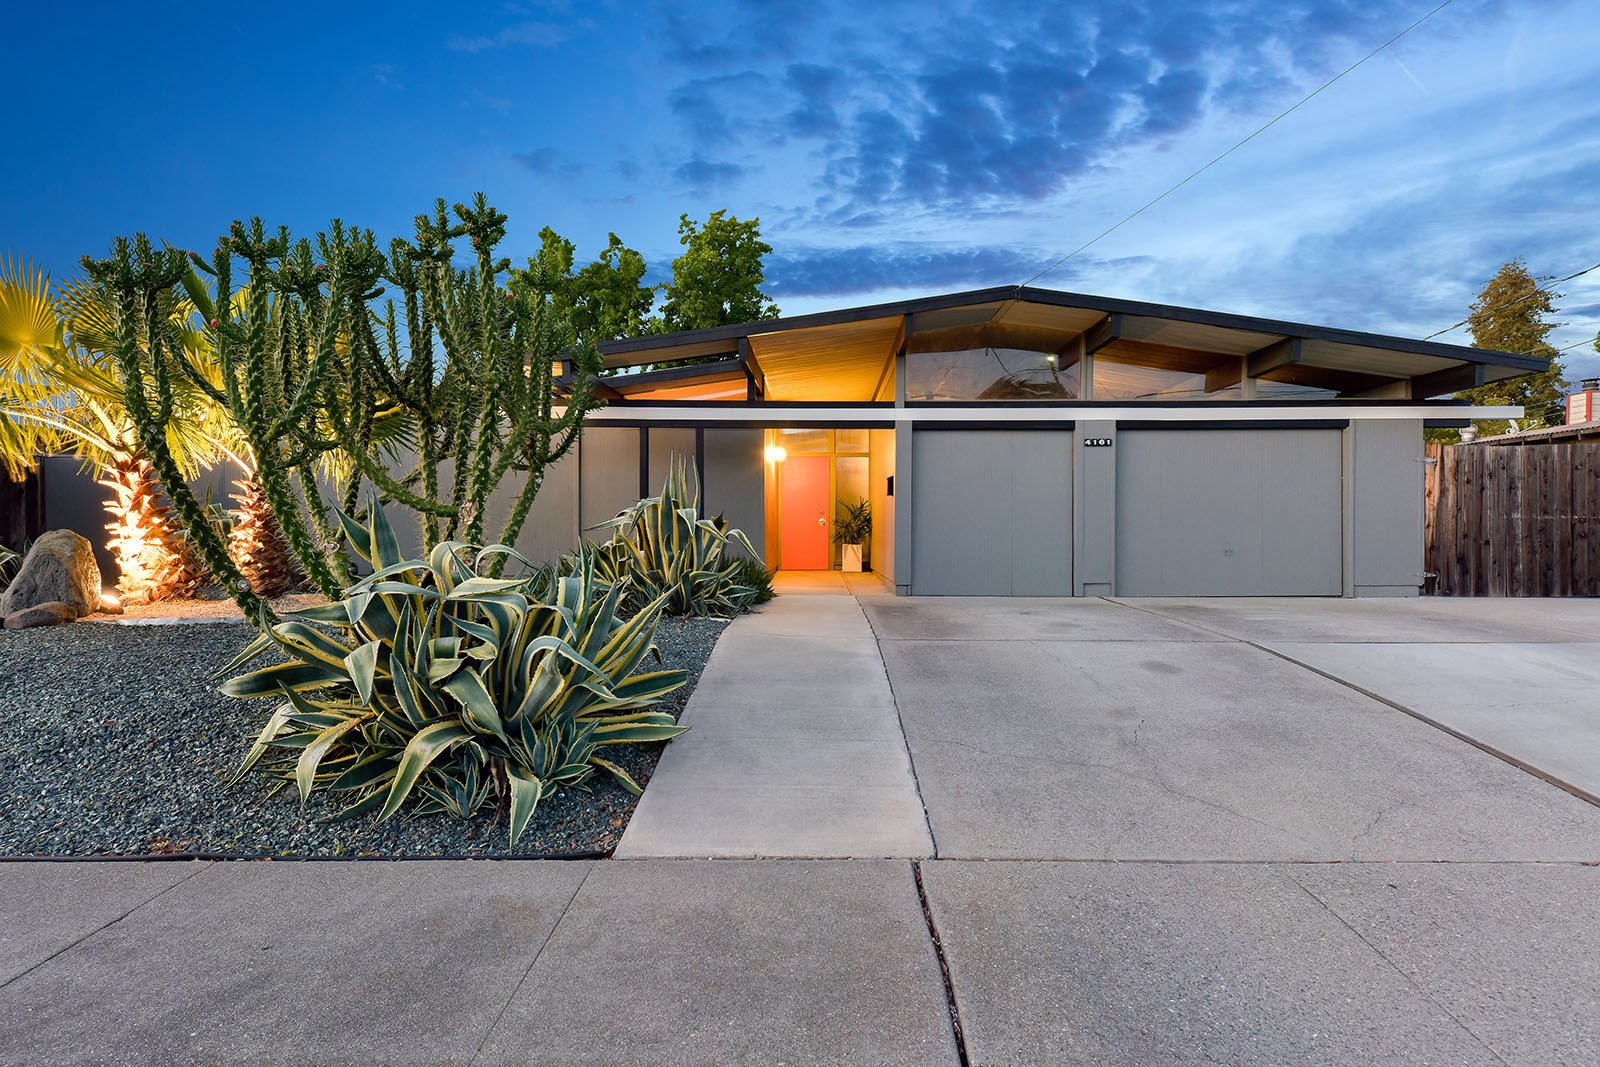 Real Estate Roundup: 10 Midcentury Modern Eichlers For ...